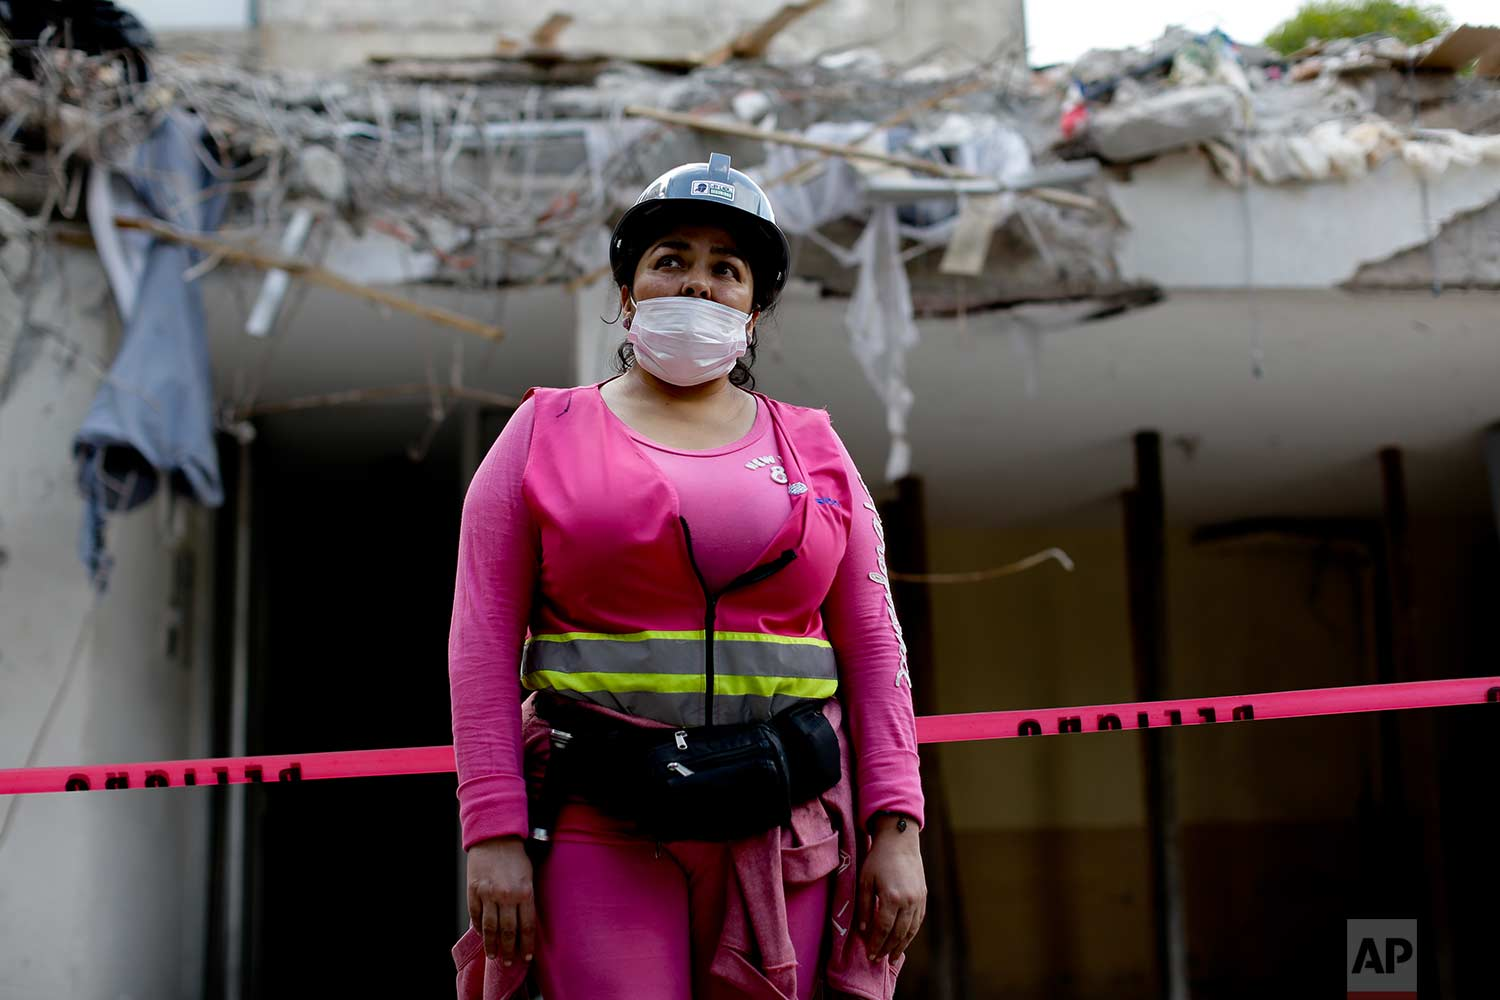 Volunteer rescue worker Lizabeth Yazmin Lopez poses for a portrait outside a collapsed building, Sept. 22, 2017, in Mexico City.(AP Photo/Natacha Pisarenko)